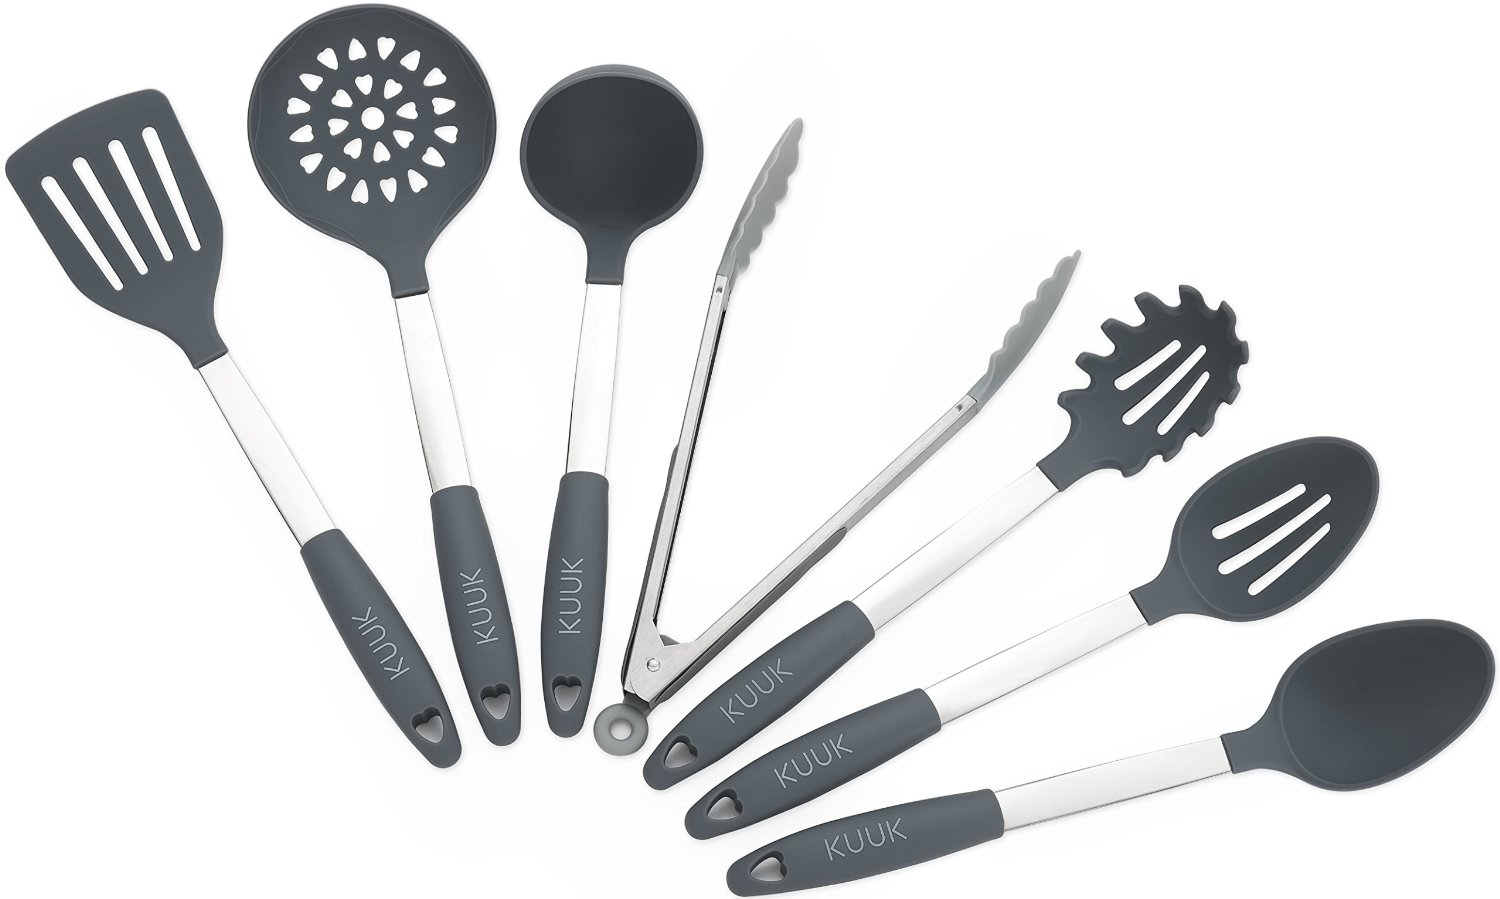 Kuuk Kitchen Utensil Set Kuuk